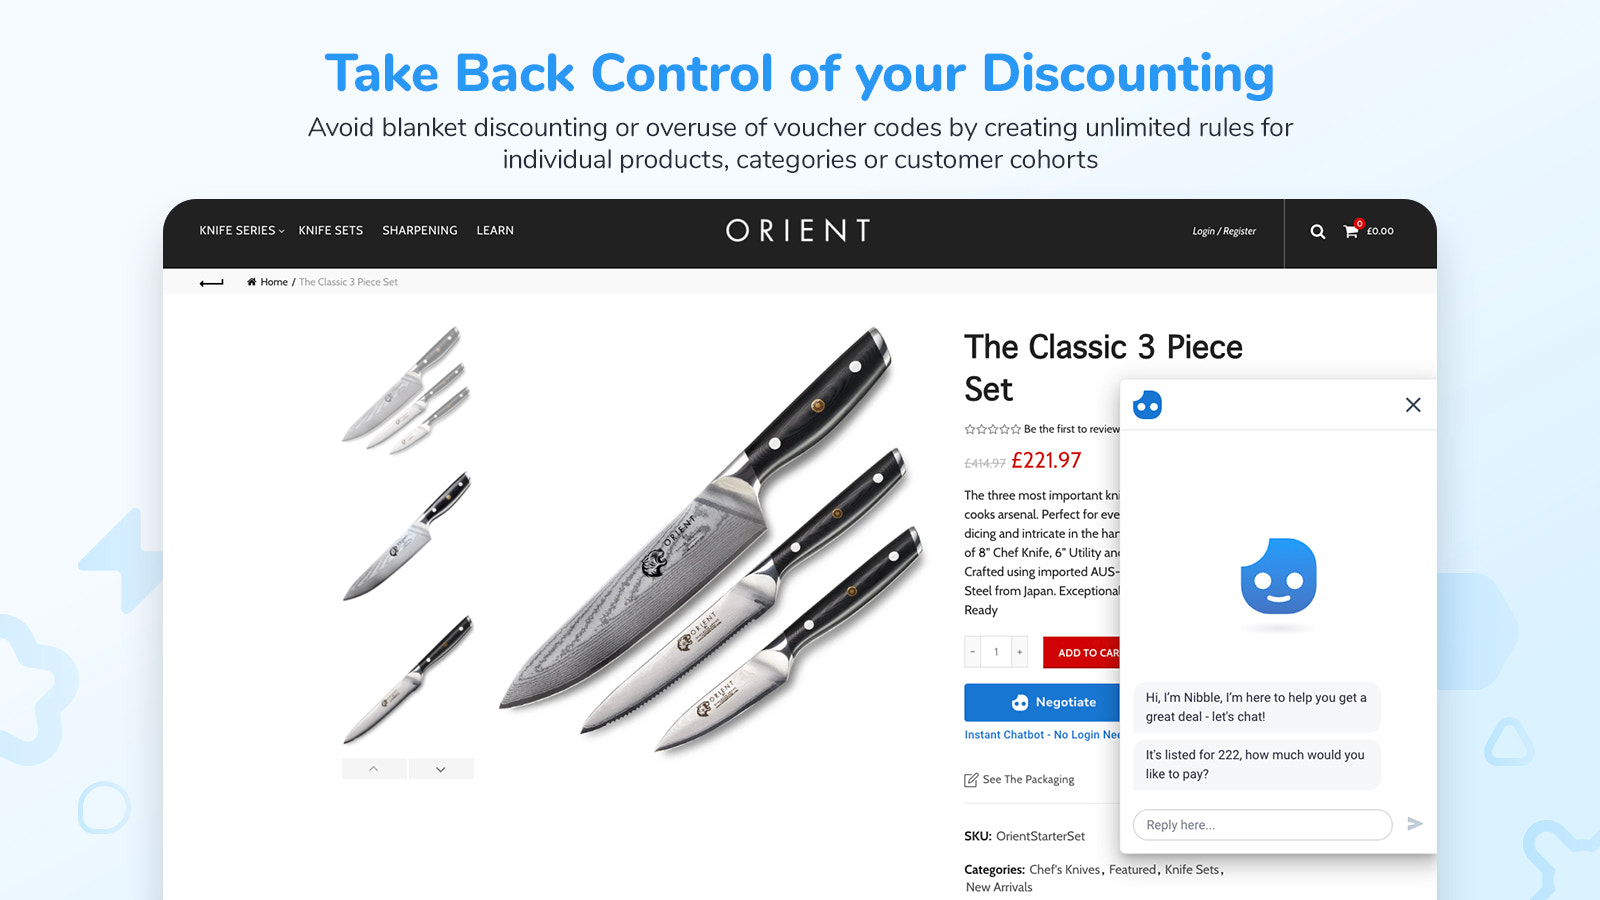 Control Your Discounting